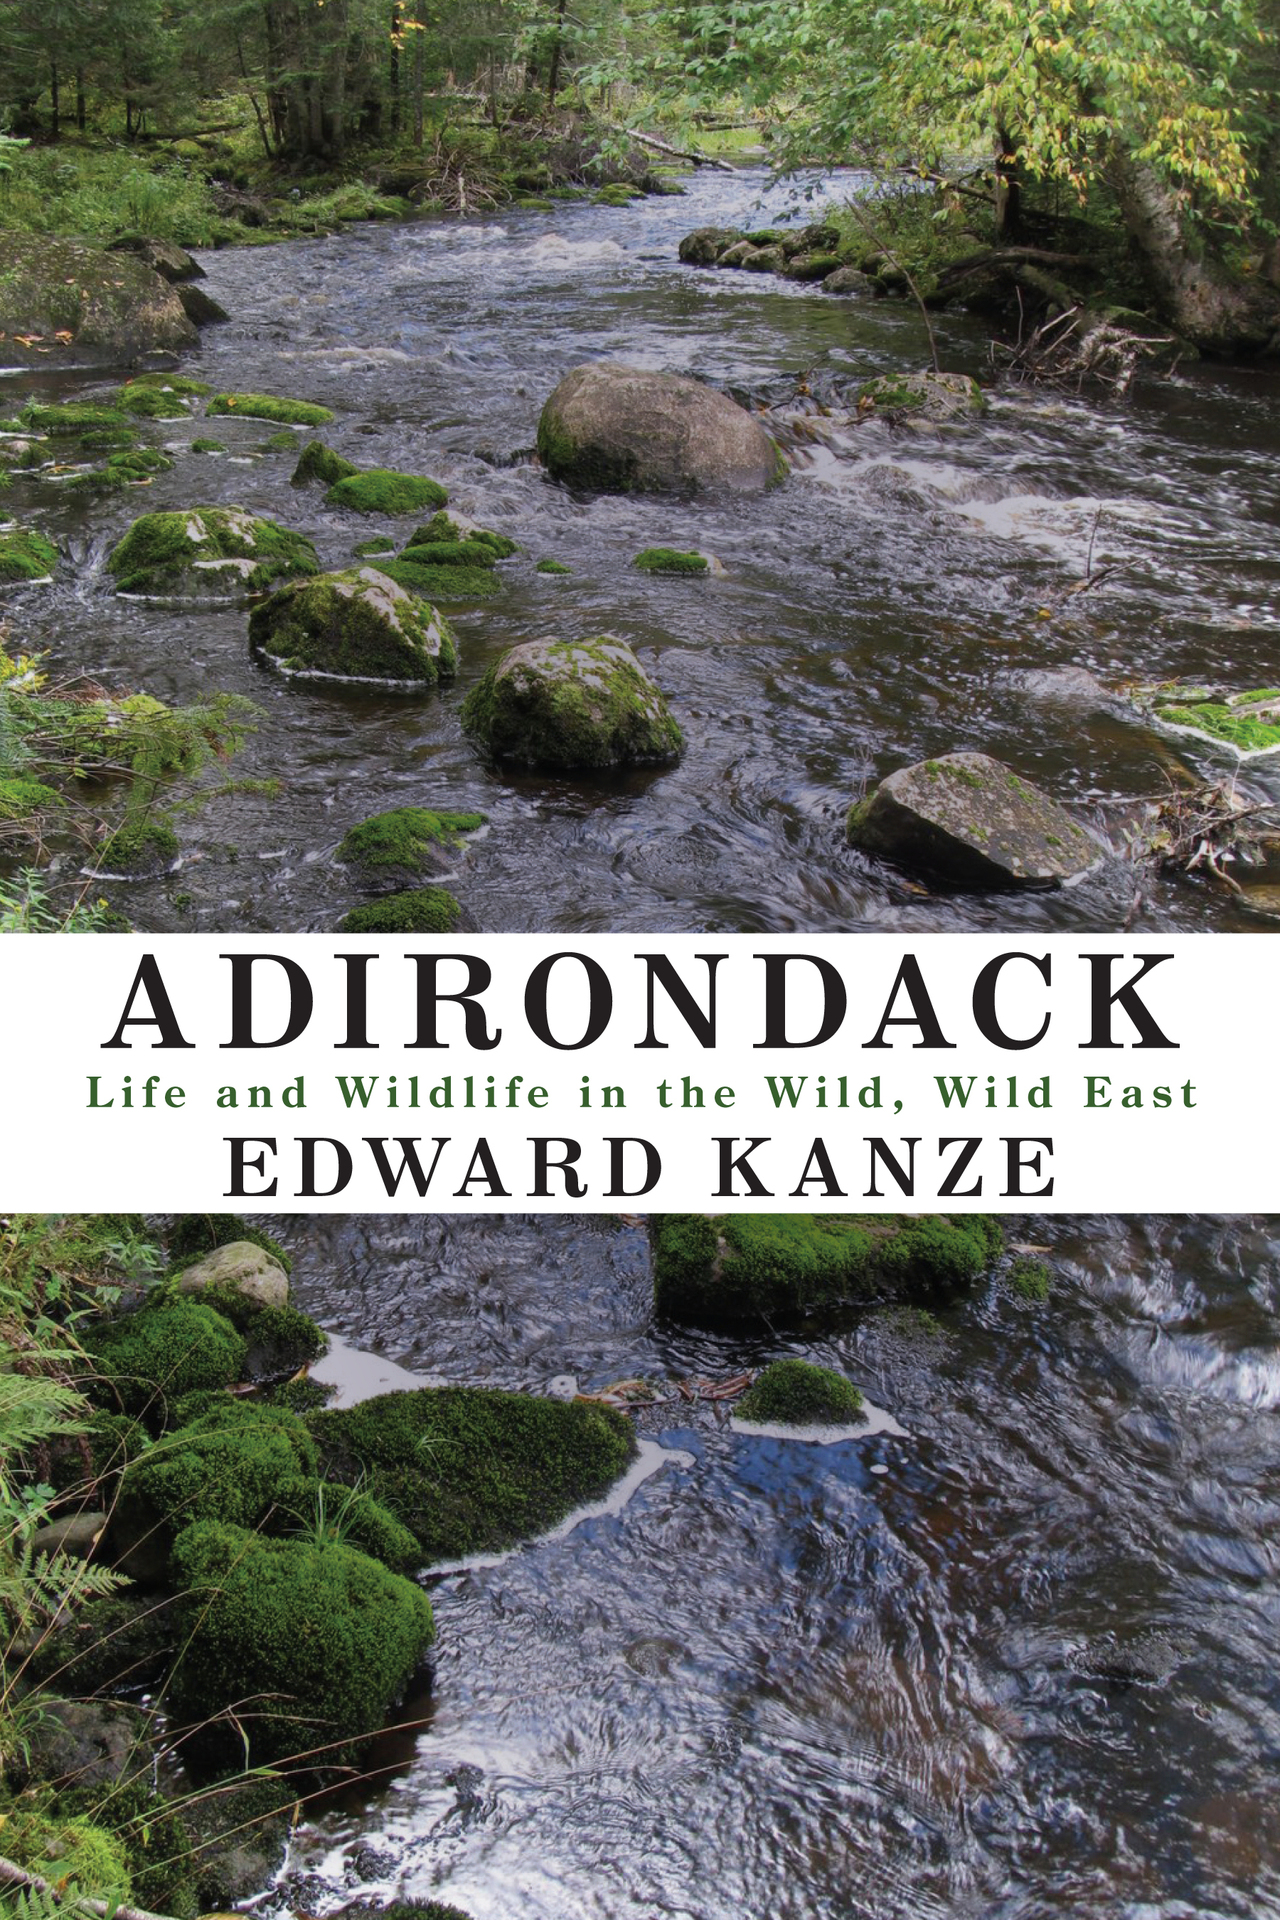 Kanze adirondack cover